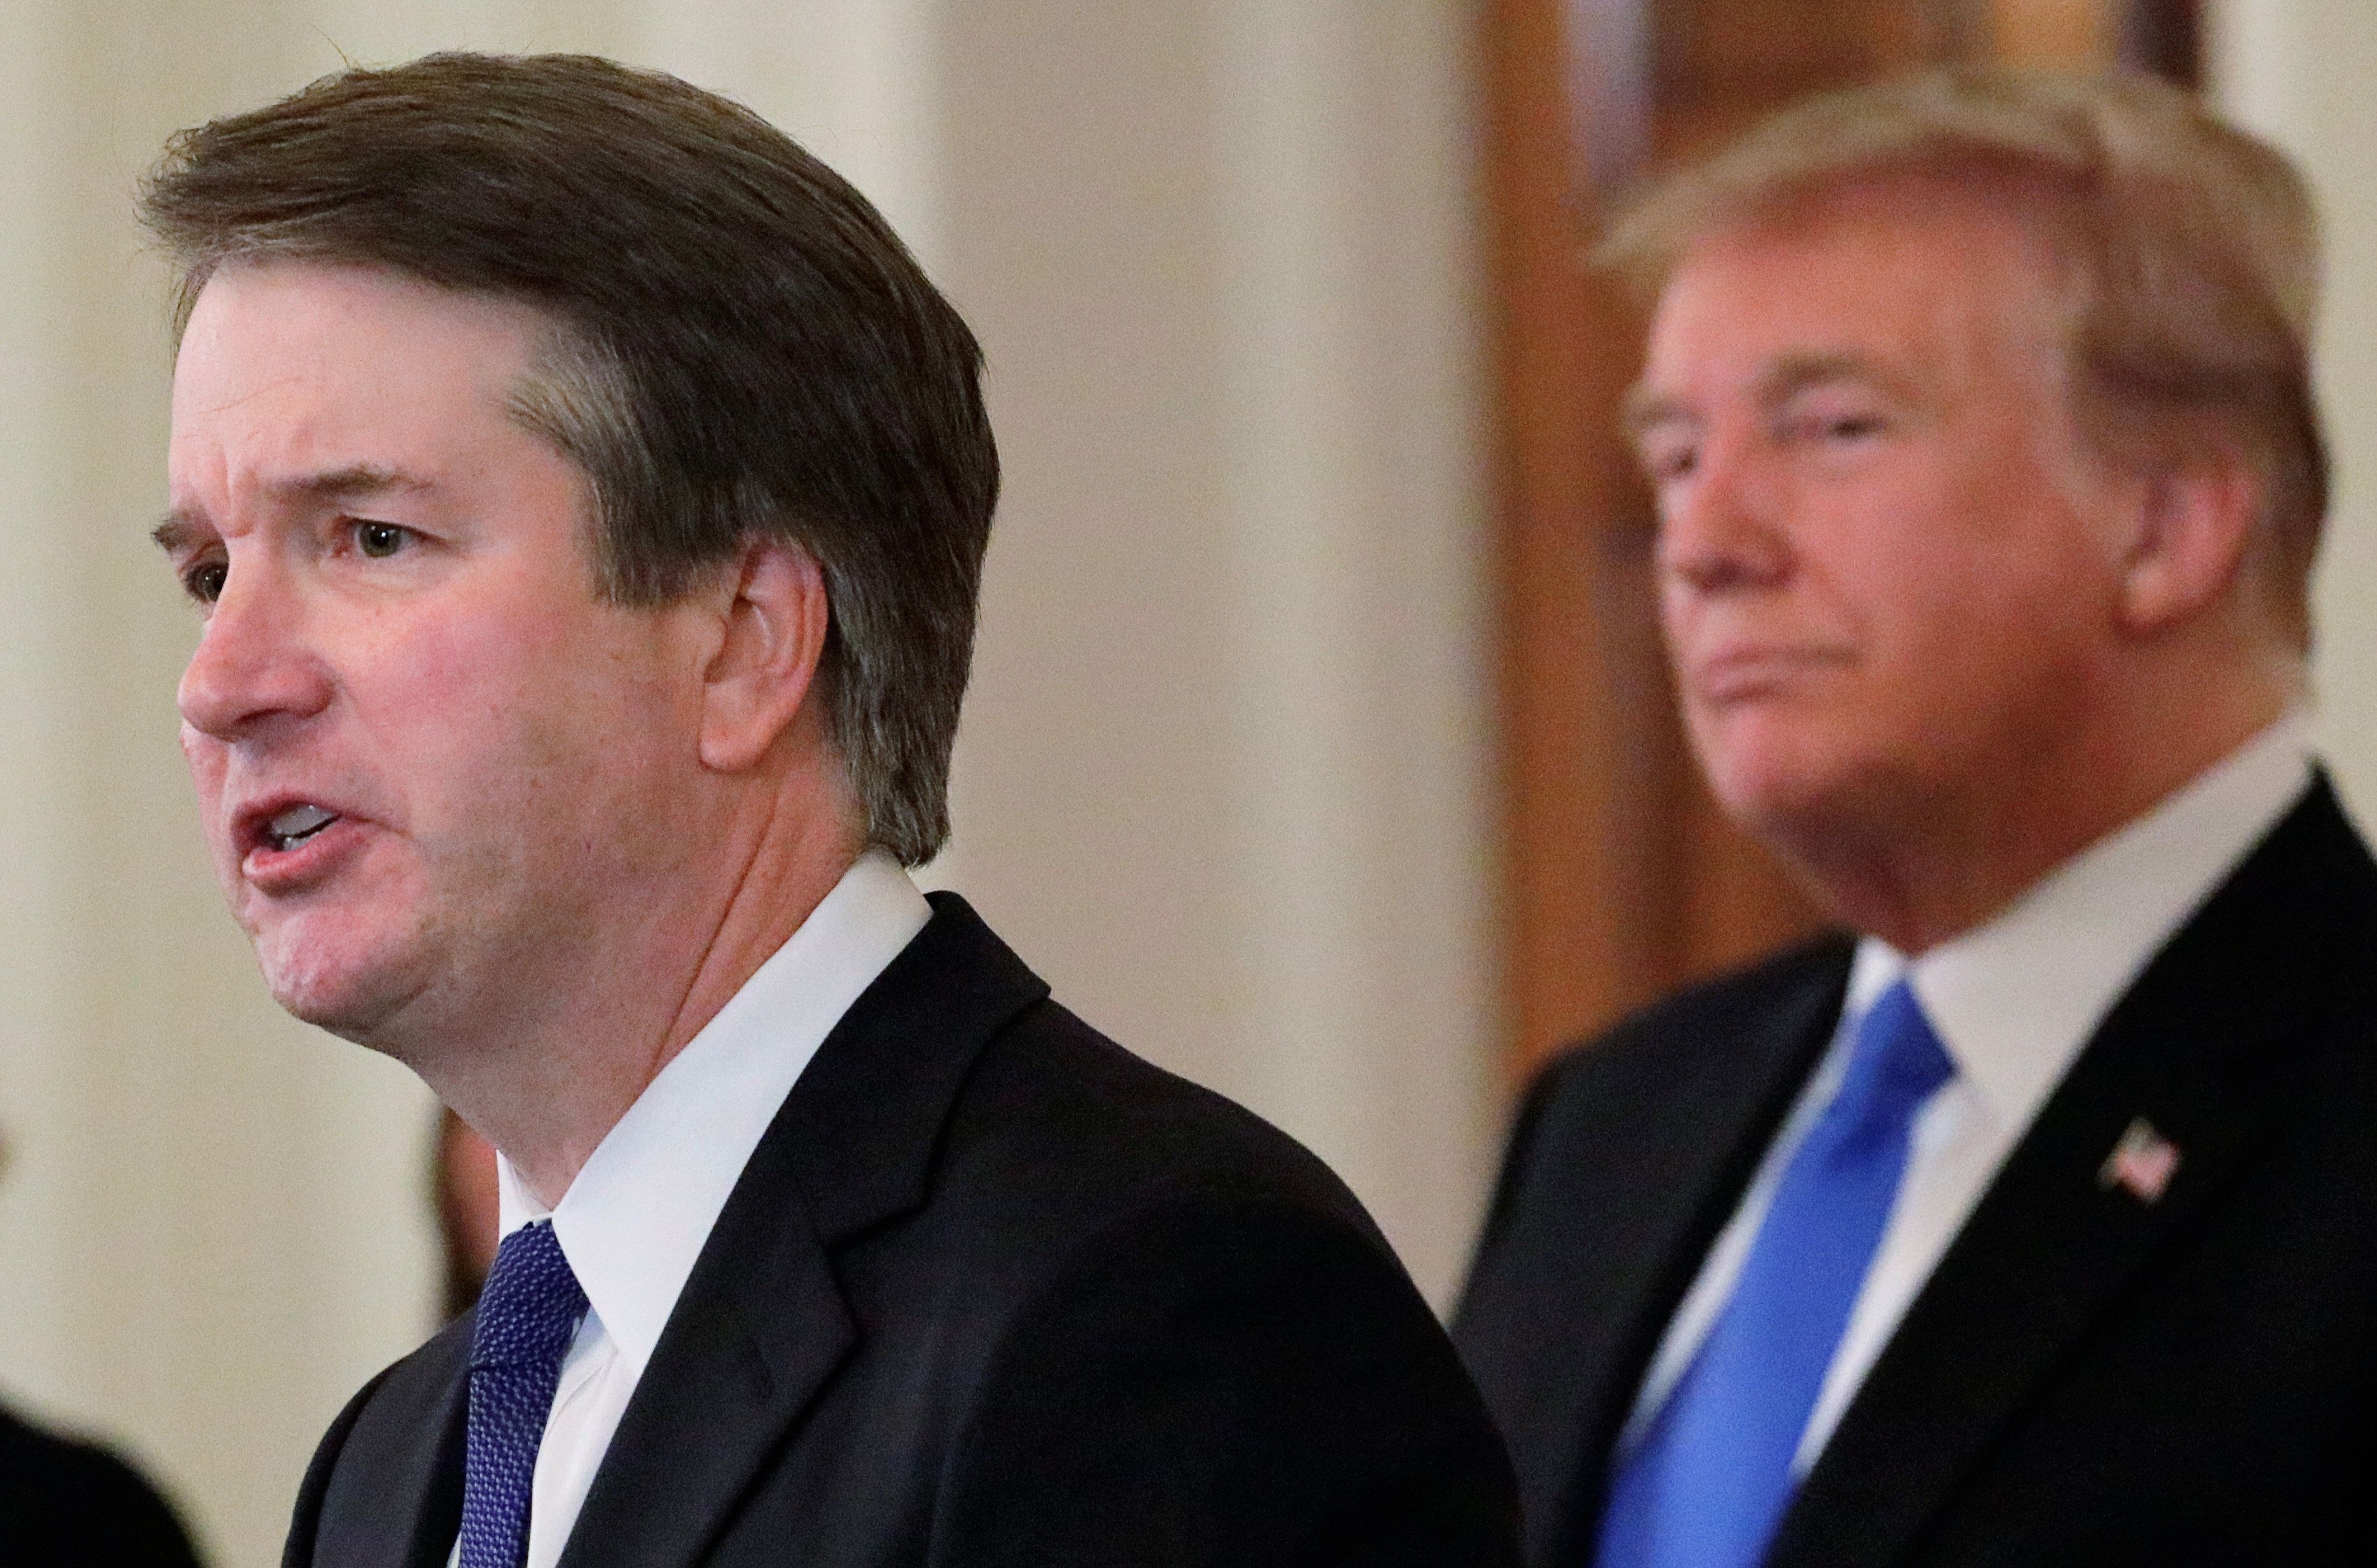 U.S. President Donald Trump listens to his nominee for the U.S. Supreme Court Brett Kavanaugh speak during his nomination announcement in the East Room of the White House in Washington, U.S., July 9, 2018. Picture taken July 9, 2018. REUTERS/Jim Bourg